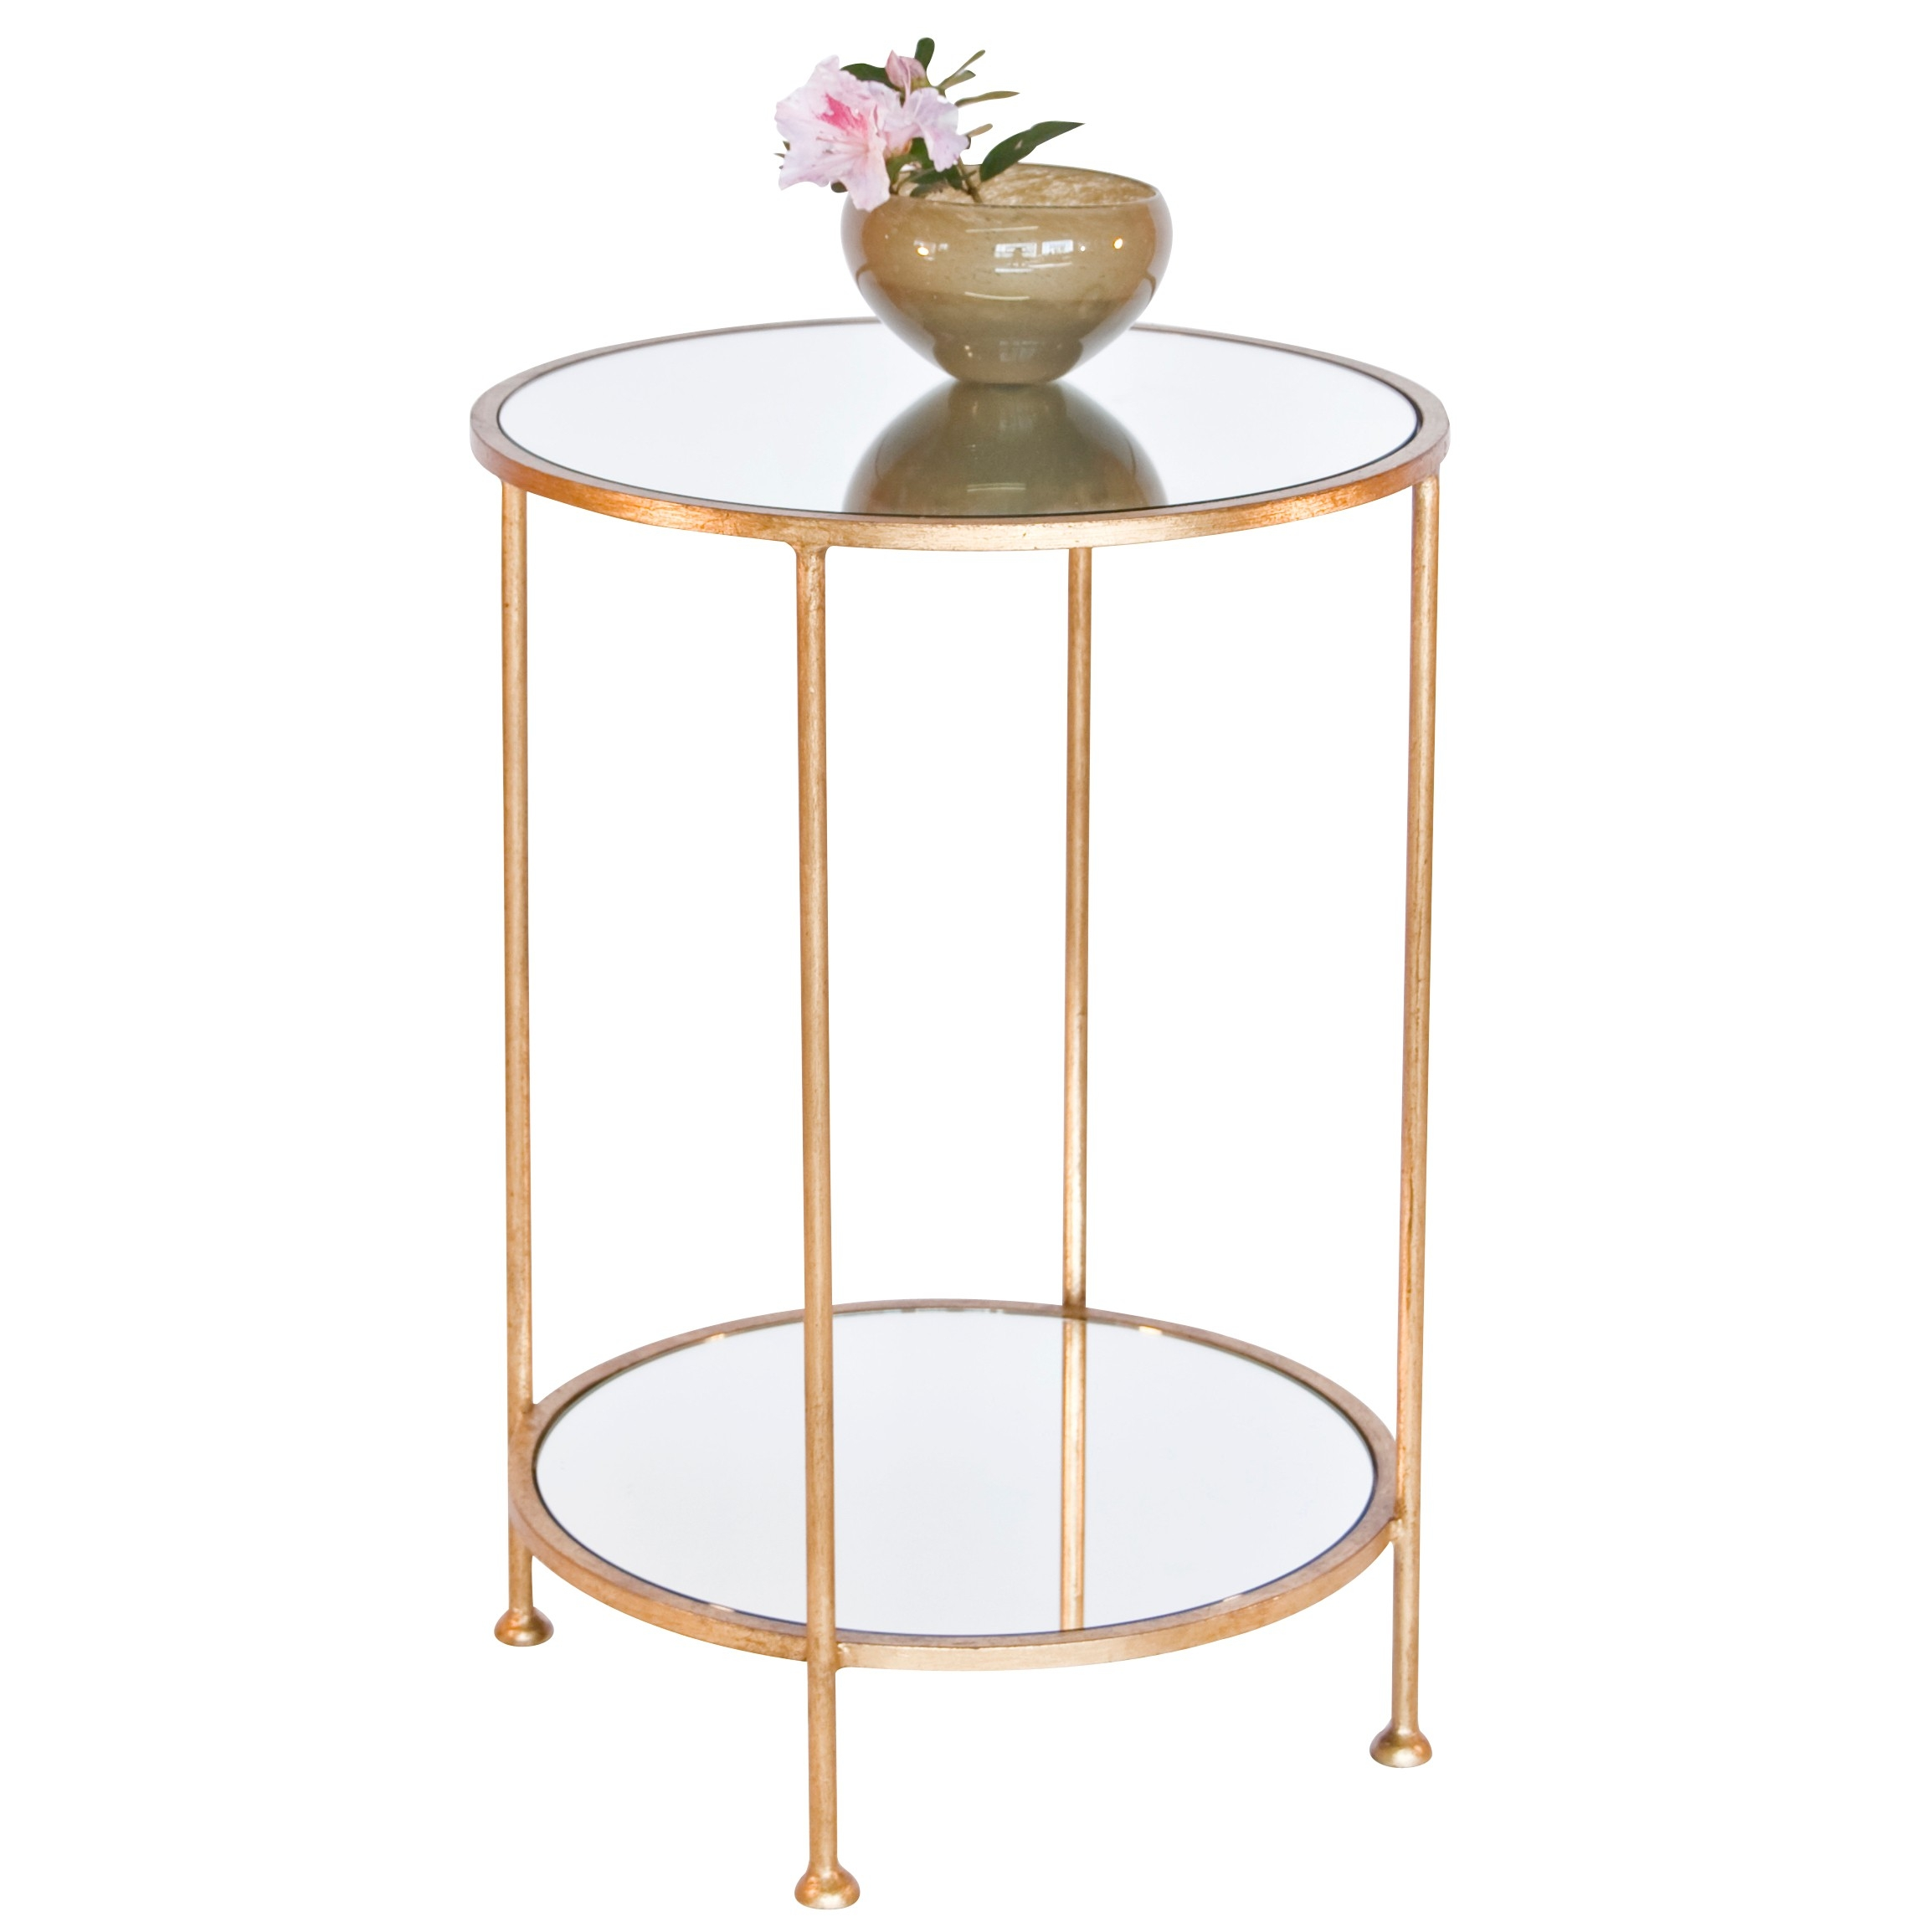 Featured Image of Gold Table Mirror